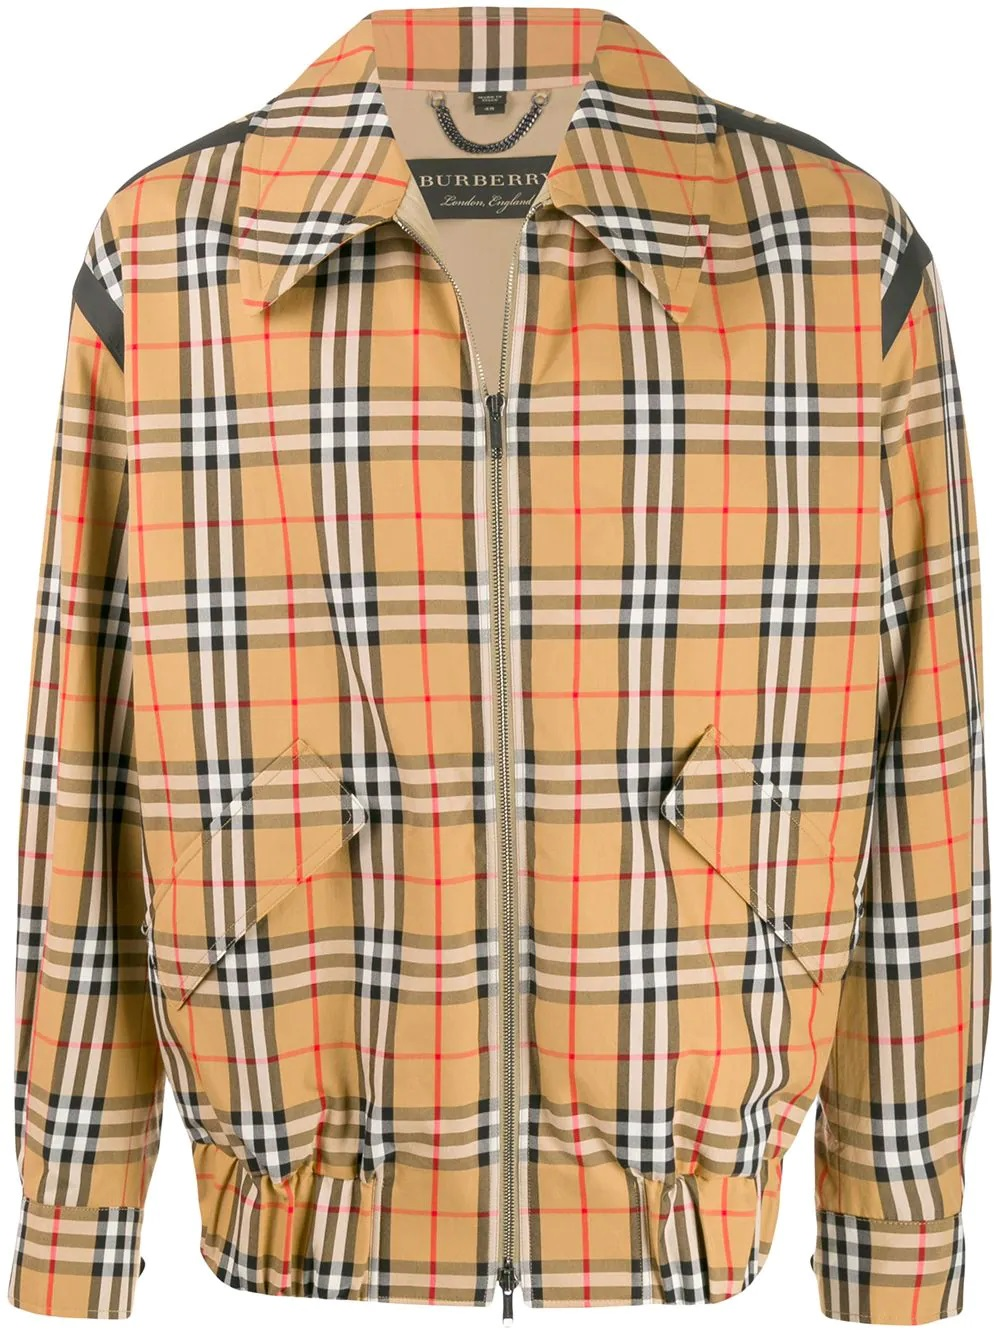 Burberry Mens Checked Zipped Jacket In N,a